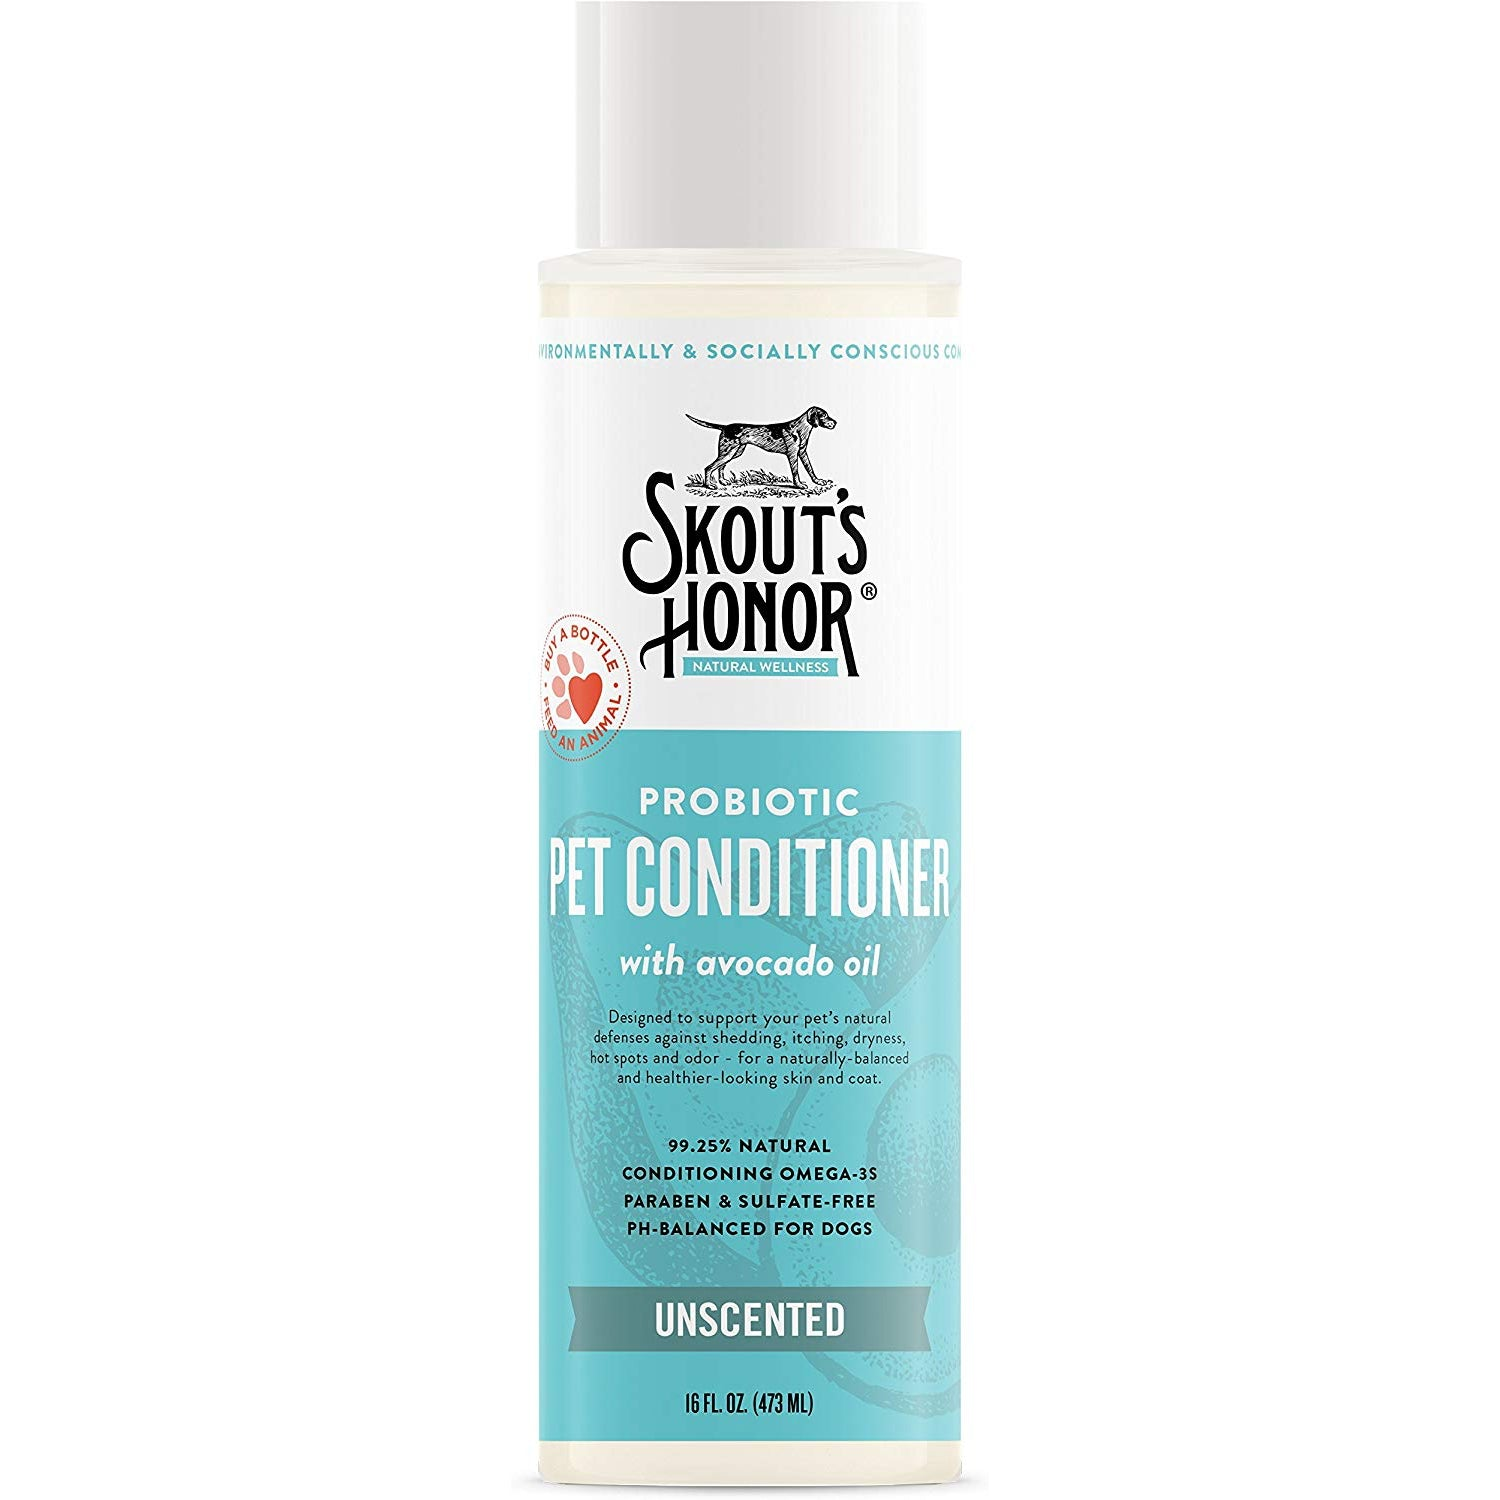 Skout's Honor Pet Conditioner Probiotic Unscented